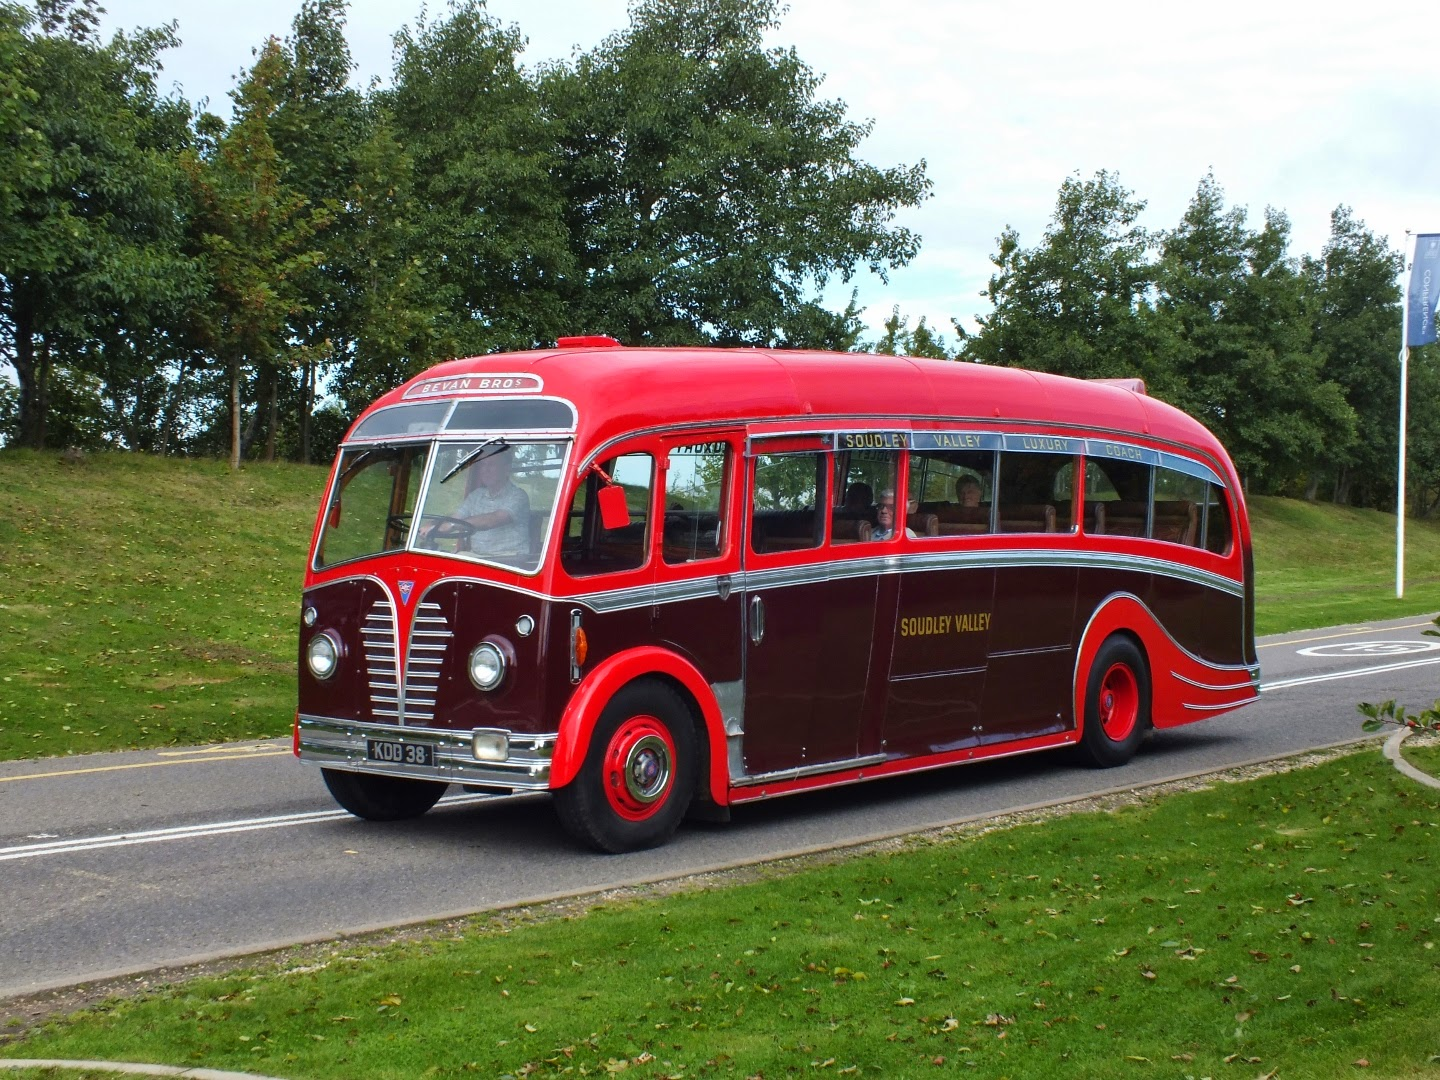 small resolution of i hadn t seen this gloucestershire classic for a while the memory of forest of dean based soudley valley is revived by kdd 38 a 1950 aec regal iii 9621a